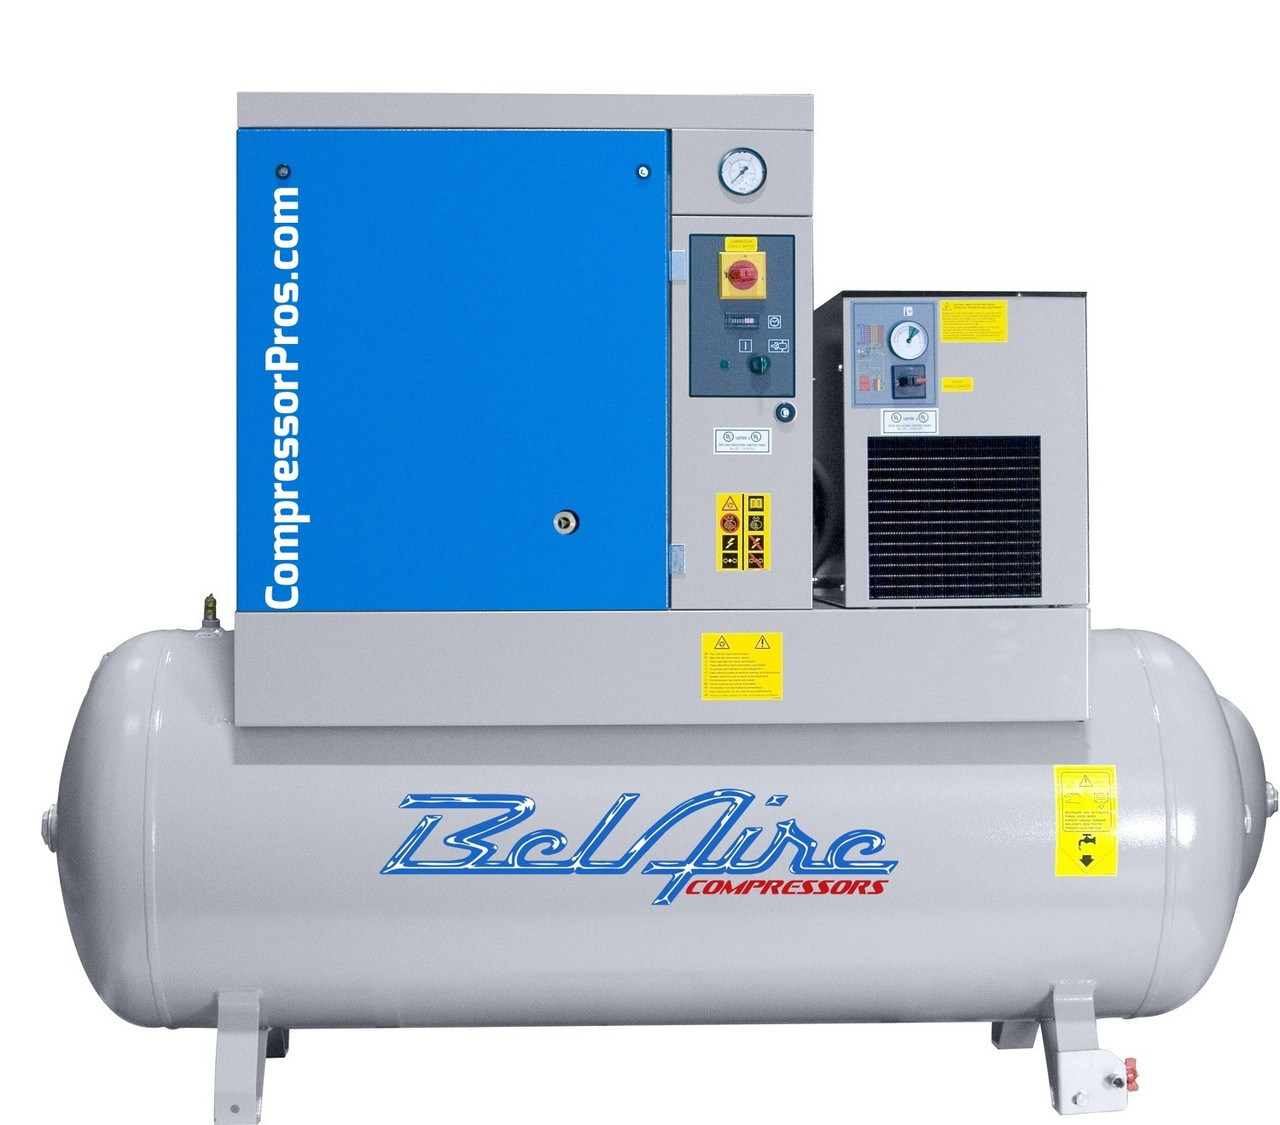 BelAire BR15253D 15 HP Three Phase Rotary Screw Air Compressor with Dryer